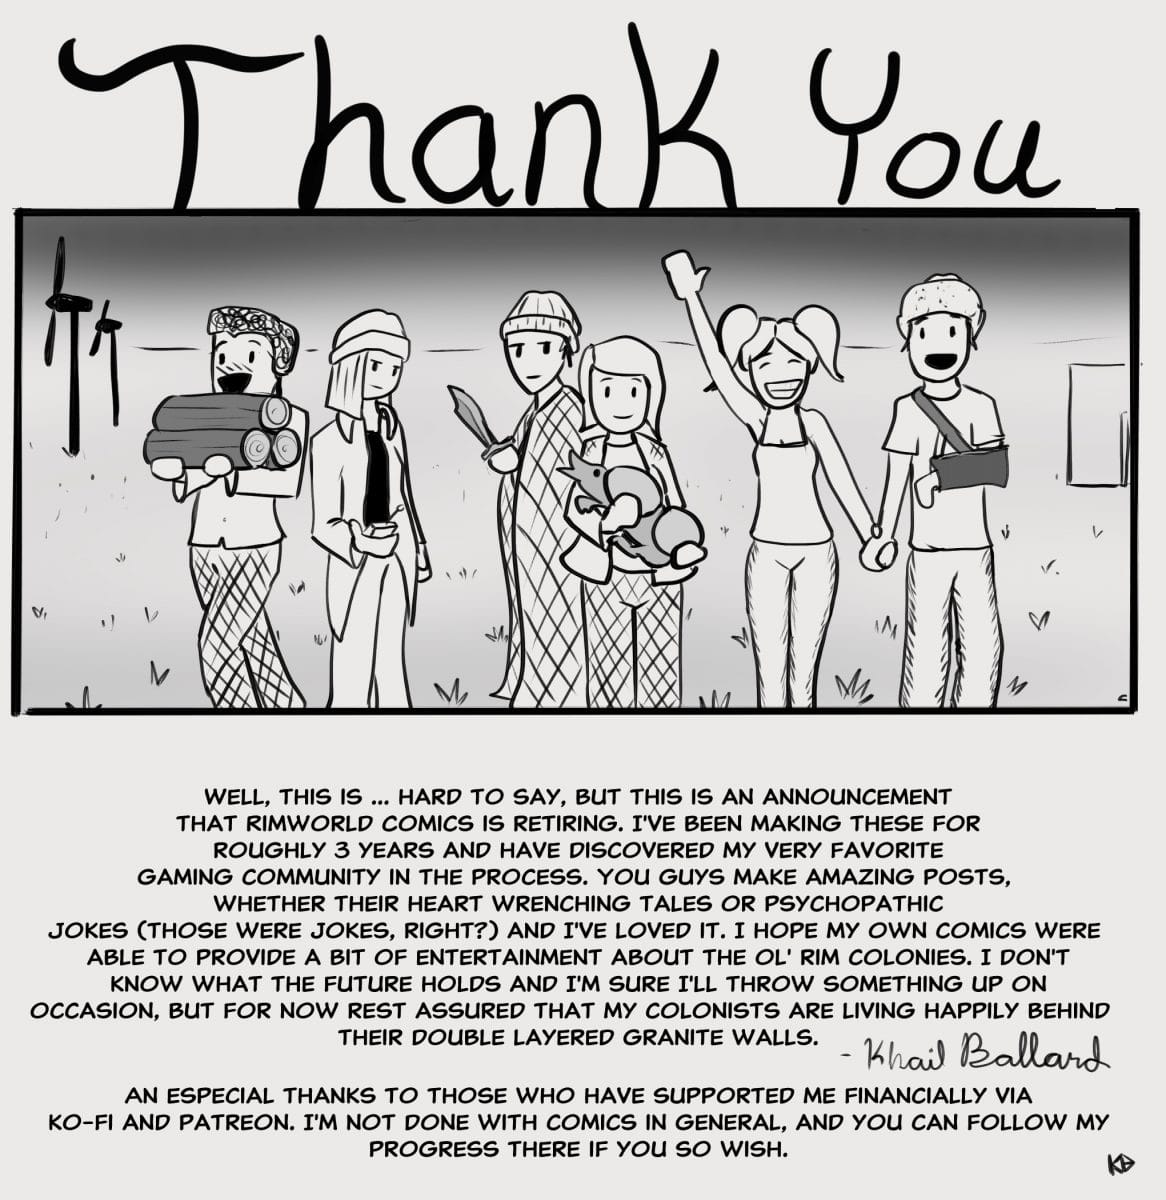 D X. Y 'a... Wit I I ,. 0.!.  . Well, This Is  Hard To Say, But This Is An Announcement That Rimworld Comics Is Retiring. I've Been Making These For Roughly 3 Years And Have Discovered My Very Favorite Gaming Community In The Process. You Guys Make Amazing Posts,. Whether Their Heart Wrenching Tales Or Psychopathic. Jokes (those Were Jokes, Right?) And I've Loved It. I Hope My Own Comics Were Able To Provide A Bit Of Entertainment About The Ol' Rim Colonies. I Don't Know What The Future Holds And I'm Sure I'll Throw Something Up On. Occasion, But For Now Rest Assured That My Colonists Are Living Happily Behind. Their Double Layered Granite Walls.   B  9. An Especial Thanks To Those Who Have Supported Me Financially Via Ko-fi And Patreon. I'm Not Done With Comics In General, And You Can Follow My Progress There If You So Wish. W